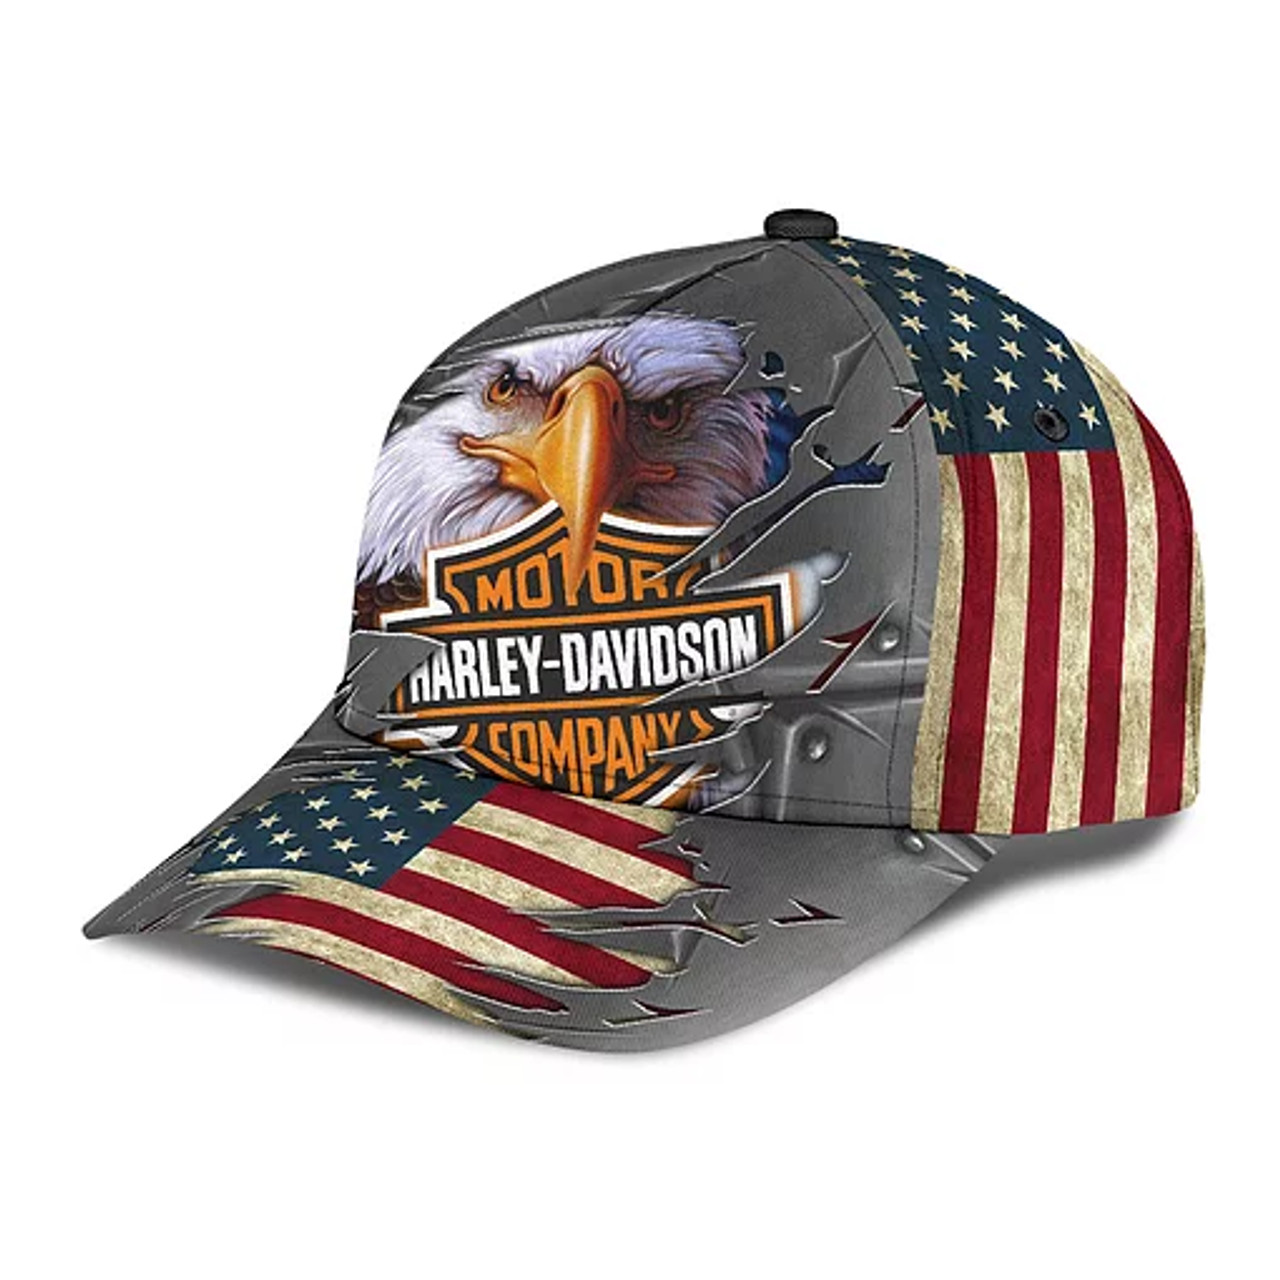 **(OFFICIAL-HARLEY-DAVIDSON-MOTORCYCLE-BIKER-HATS/CUSTOMIZED-GRAPHIC-3D-PRINTED-HARLEY-EAGLE-DESIGN)**